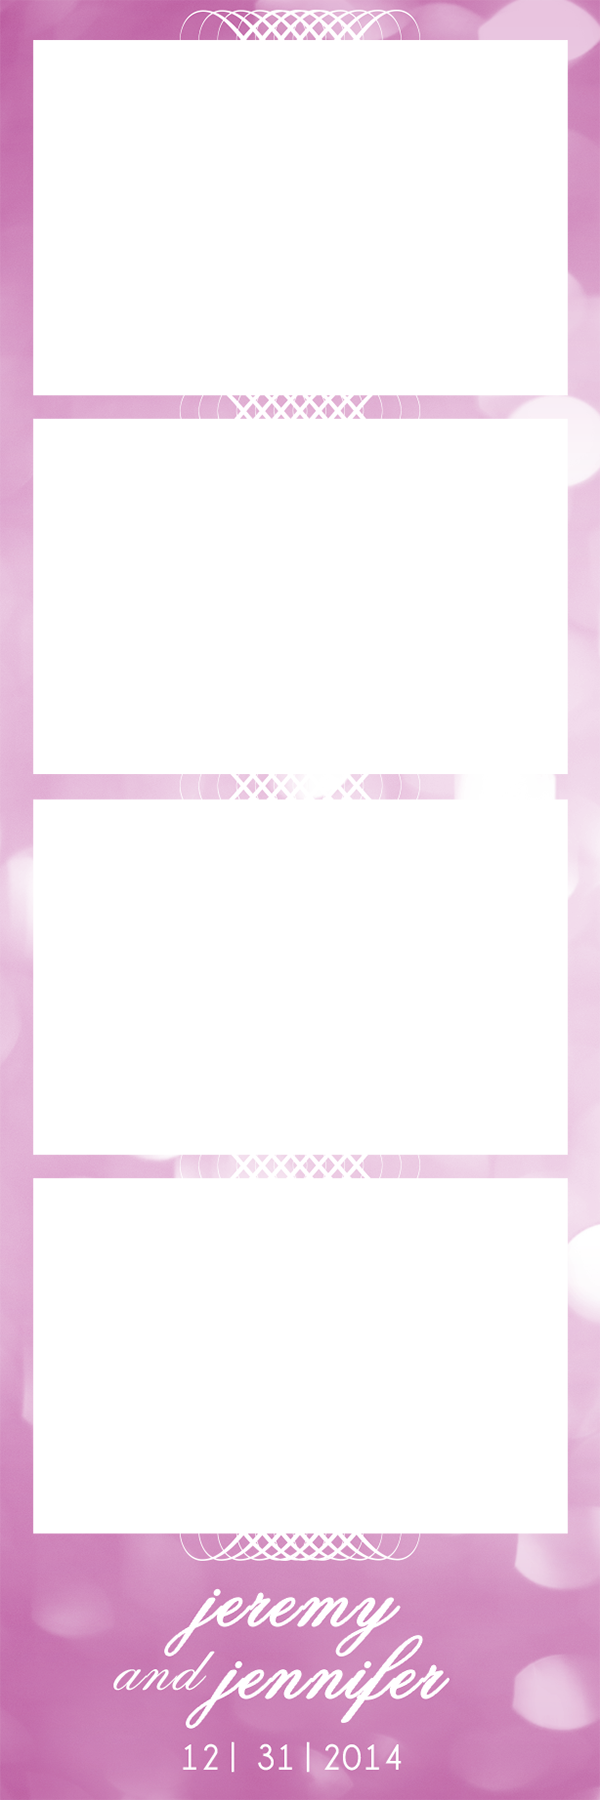 012B_MutedPink_4UP_D1.png